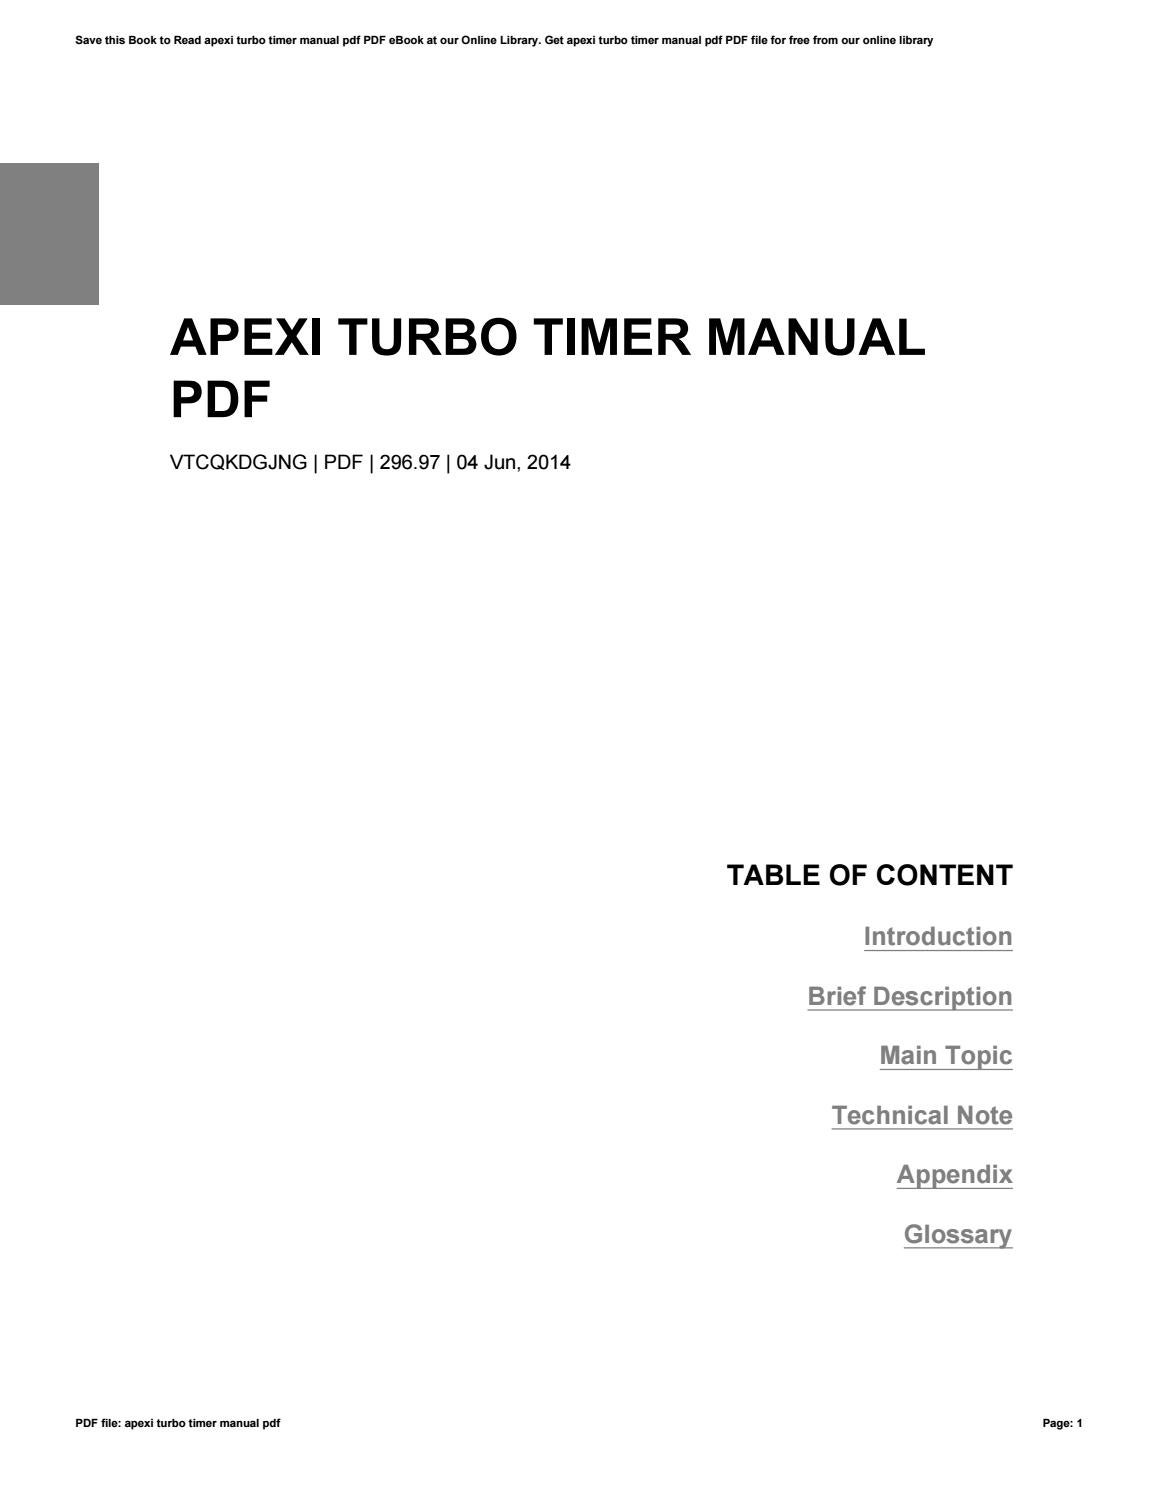 Apexi turbo timer manual pdf by MaryCampbell1826 - issuu